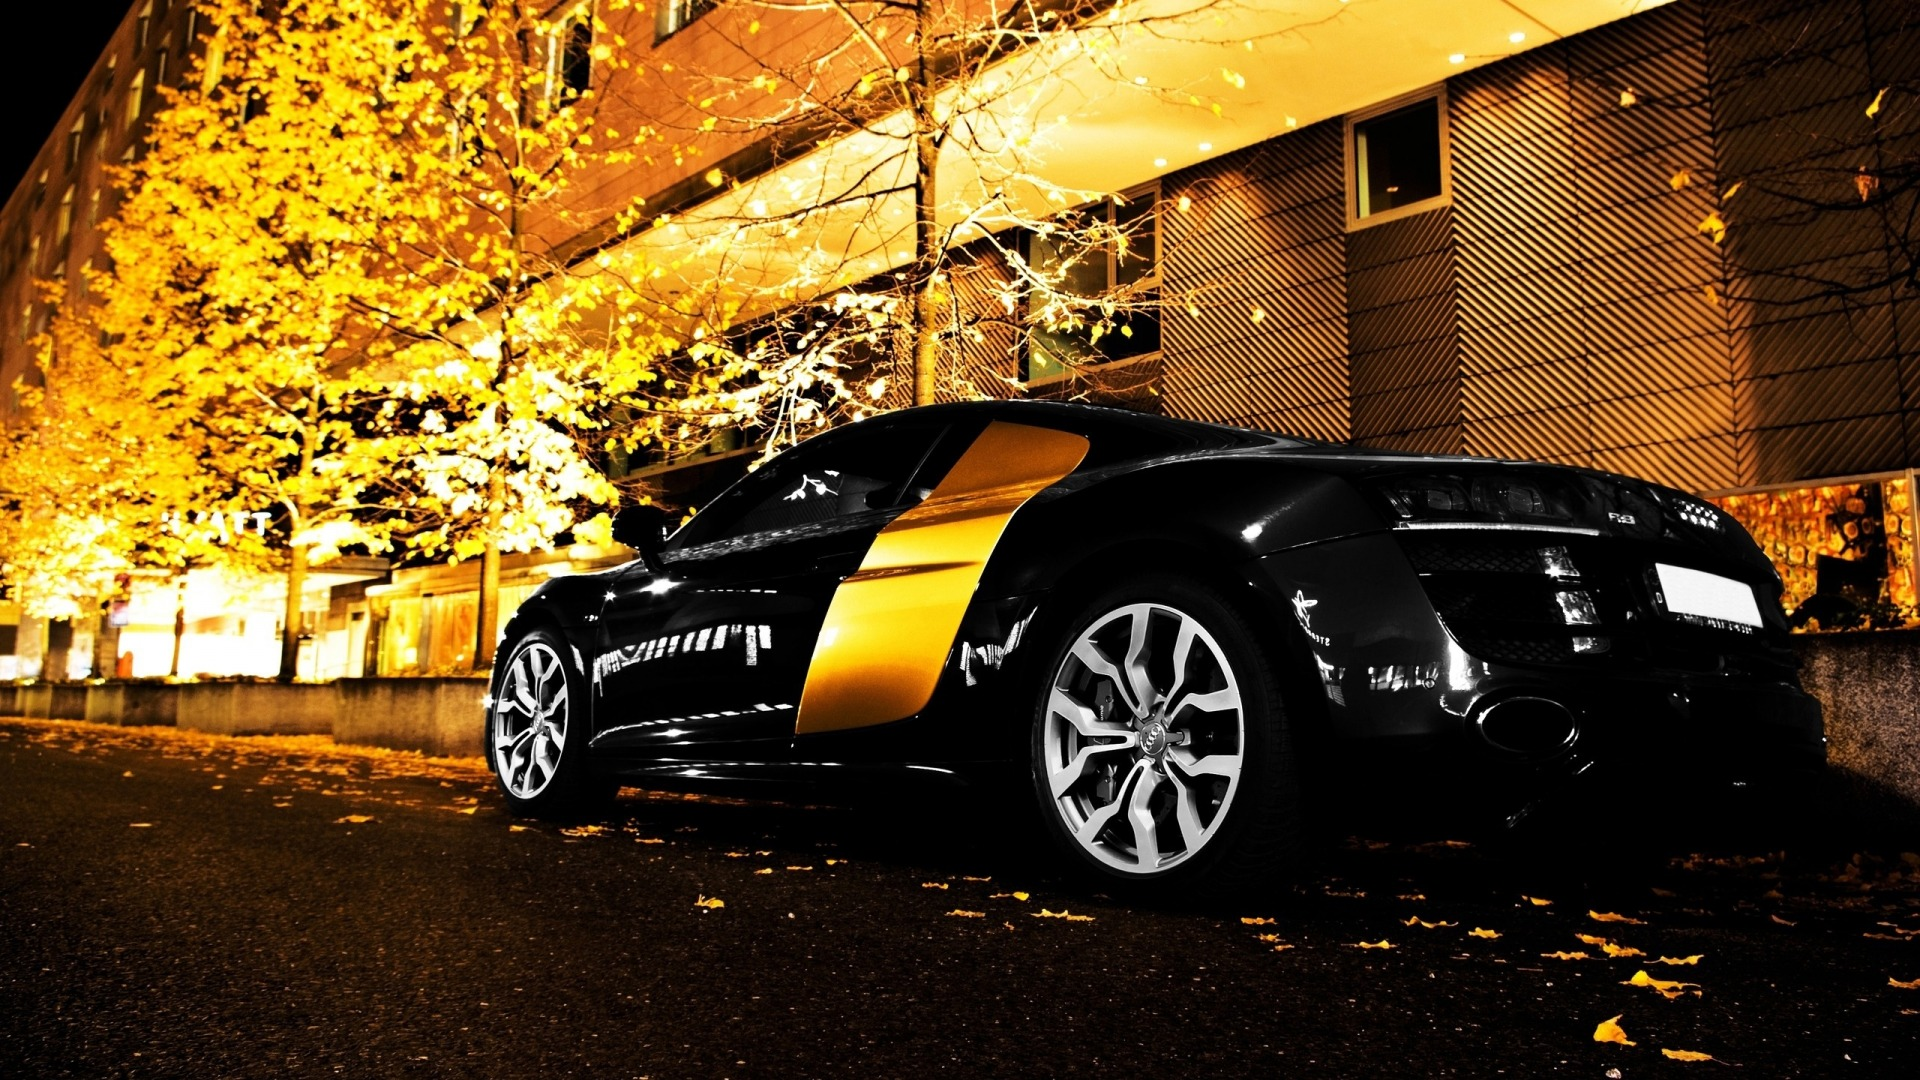 Download Free P Car Backgrounds Page Of Wallpaperwiki - Audi car background